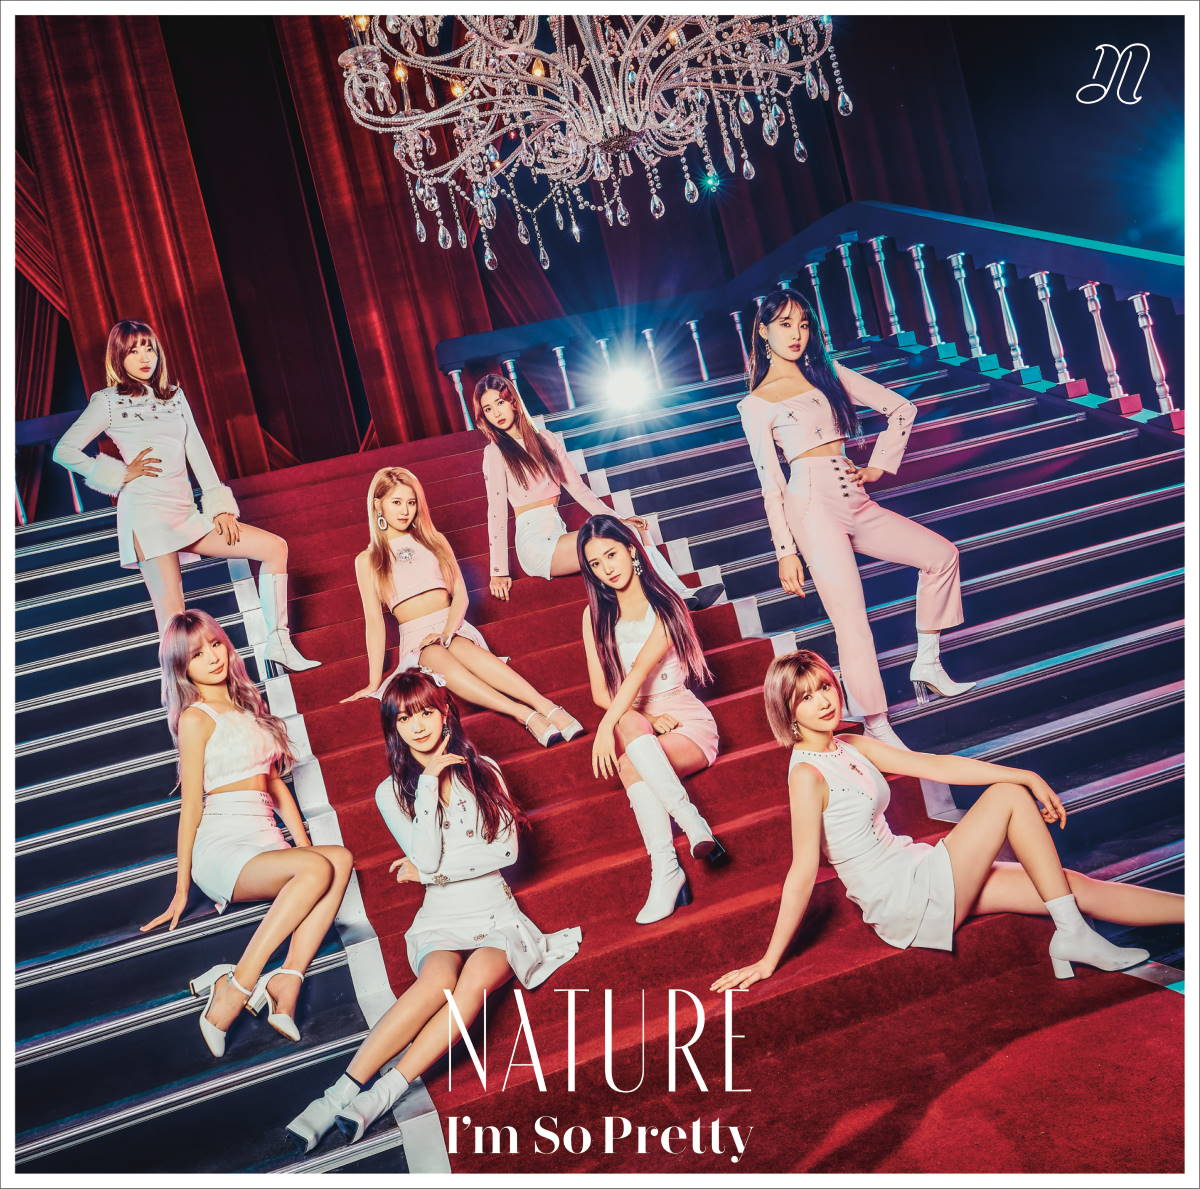 『NATURE - OOPSIE (My Bad) -Japanese ver.-』収録の『I'm So Pretty -Japanese ver.-』ジャケット